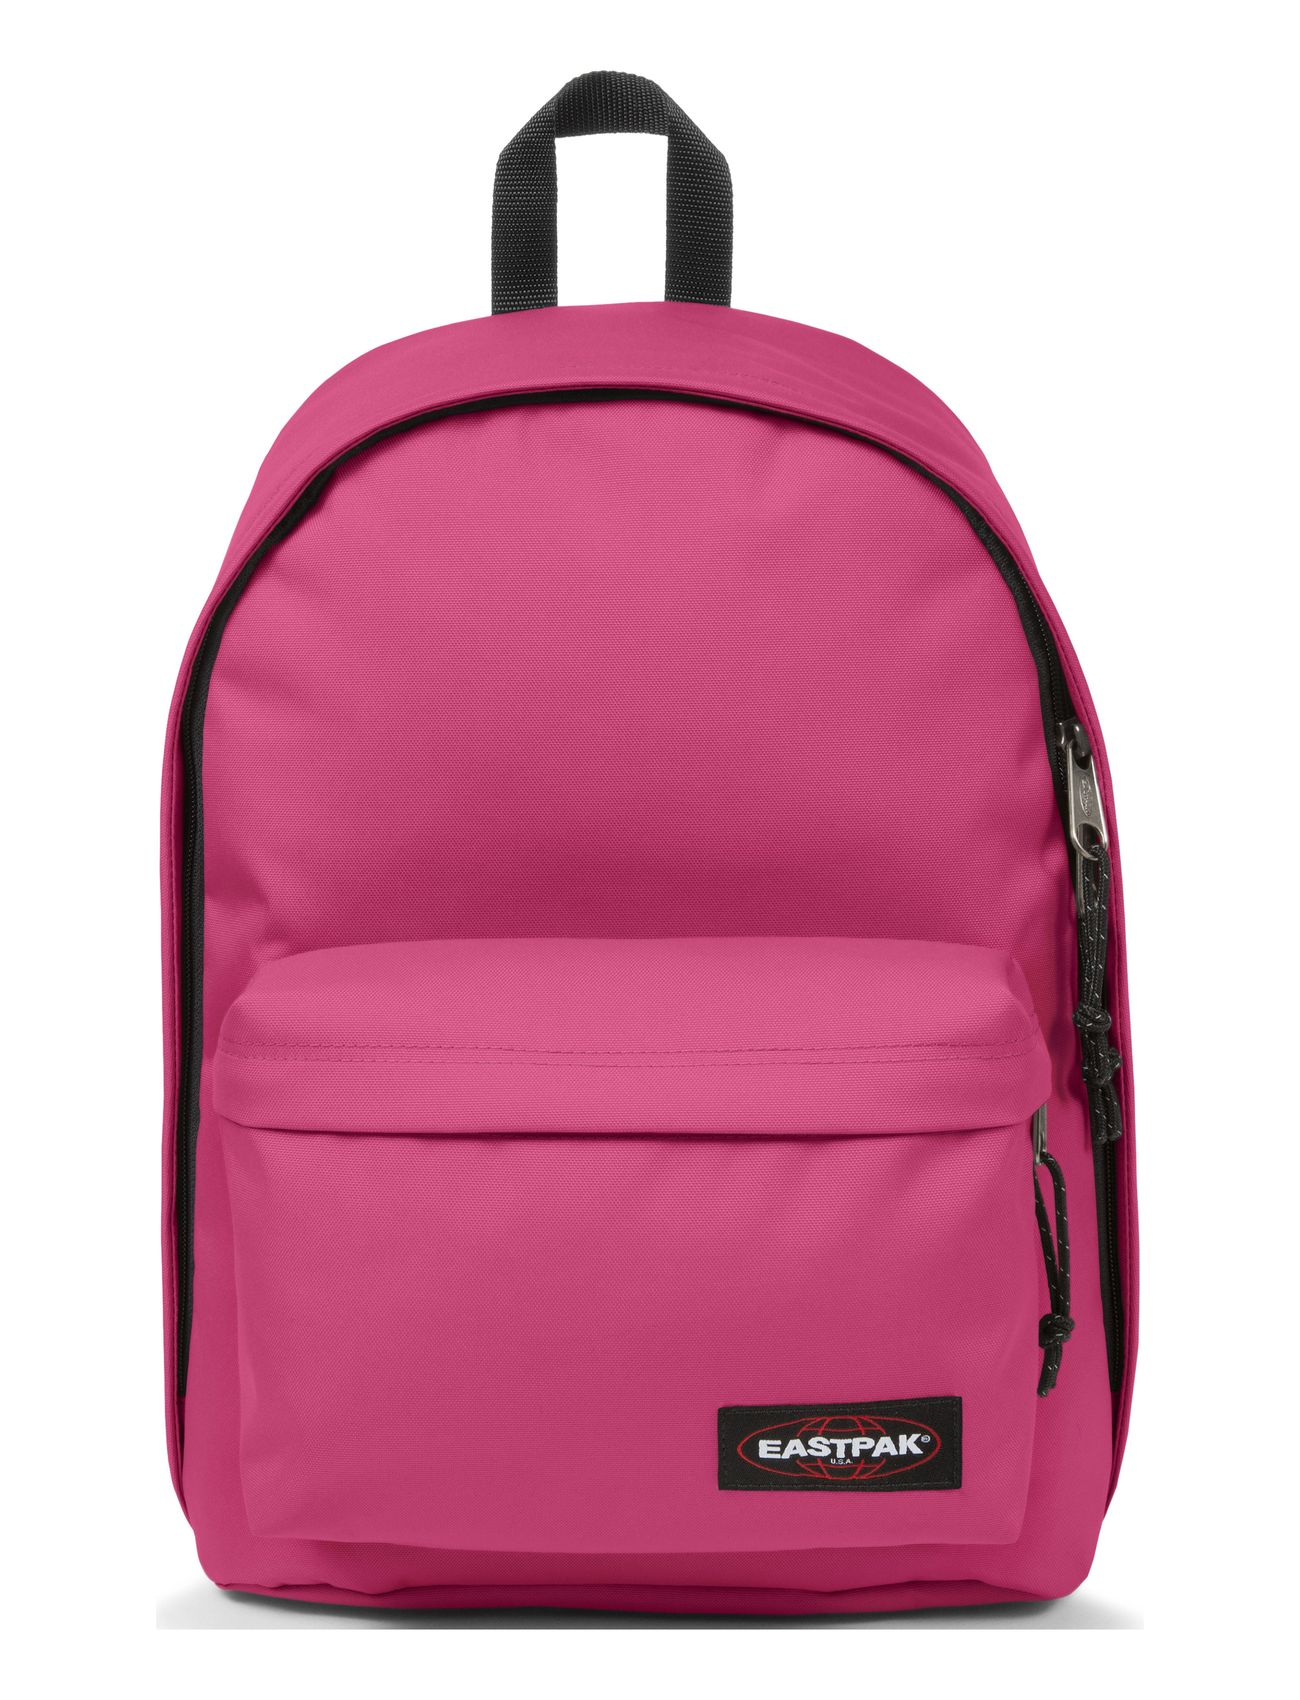 Eastpak OUT OF OFFICE - EXTRA PINK